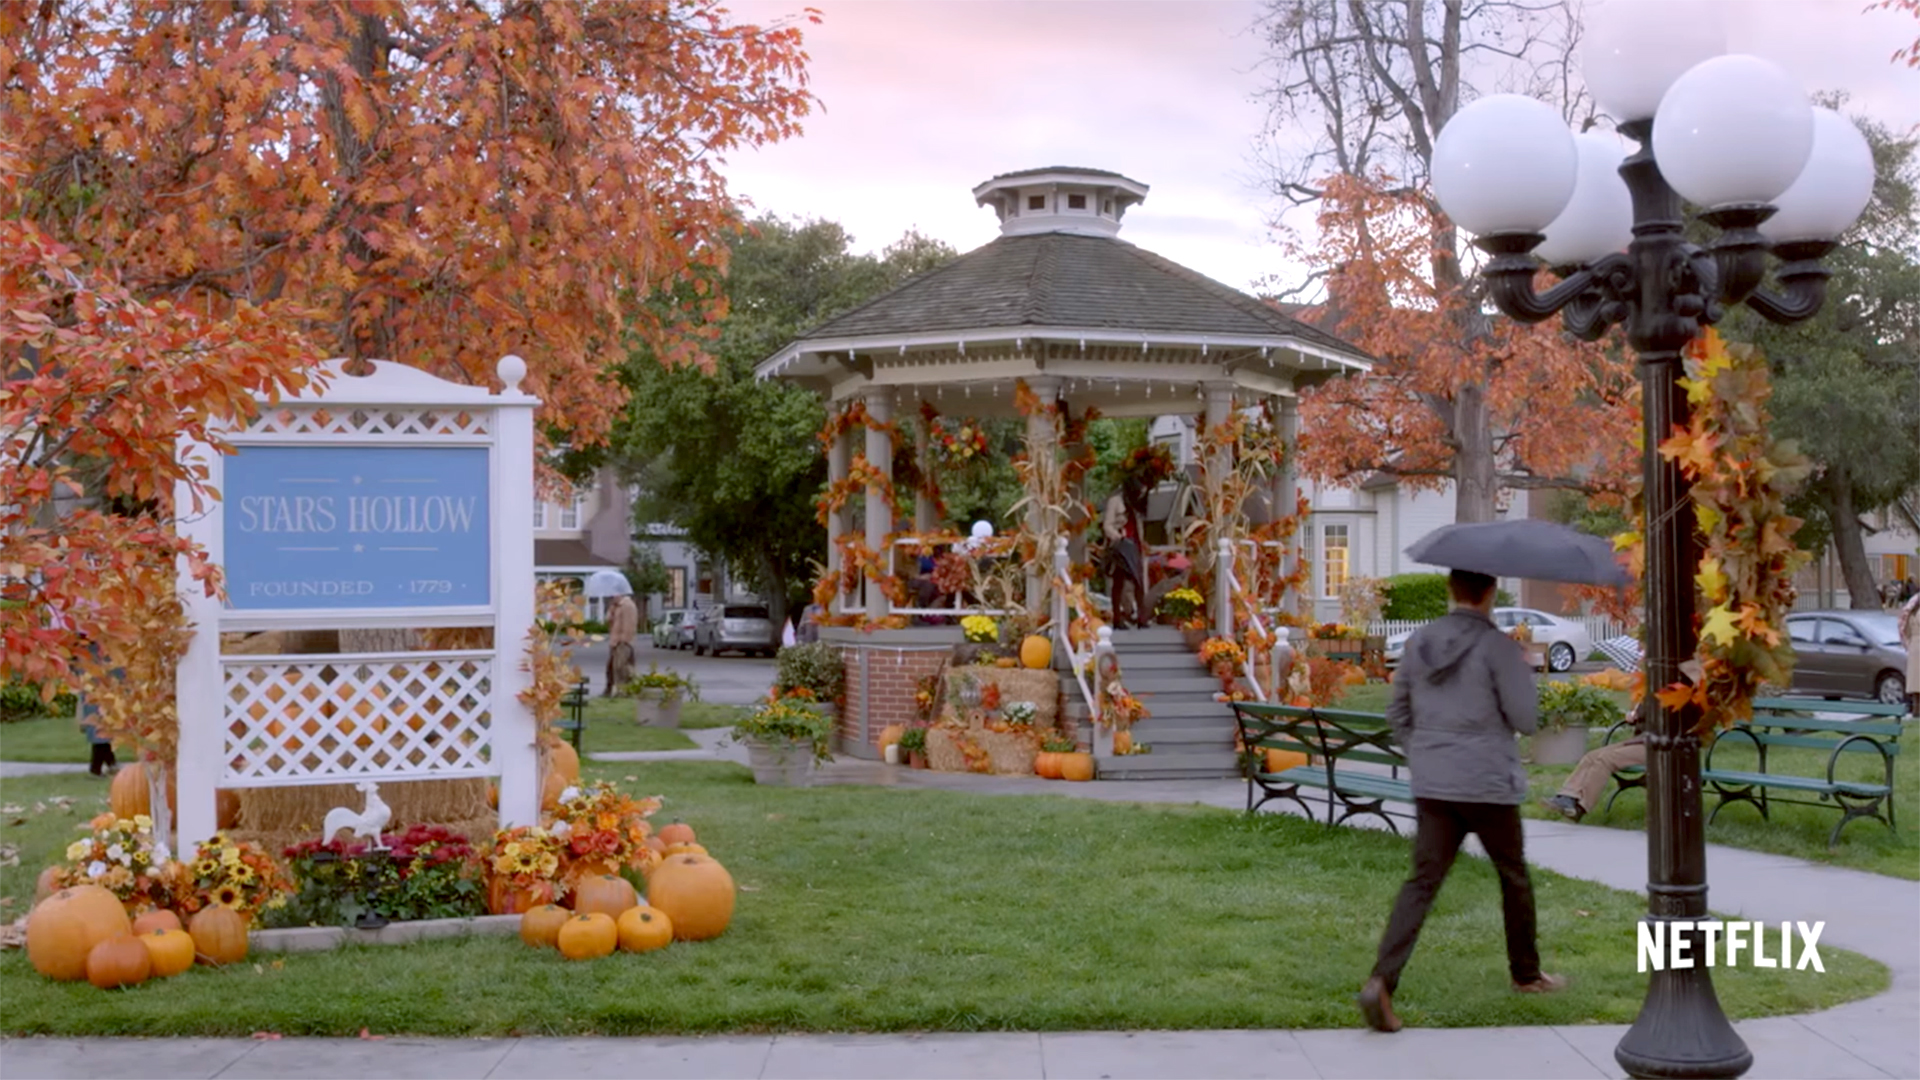 Pretty Fall Wallpapers Town Of Stars Hollow Visit Ct